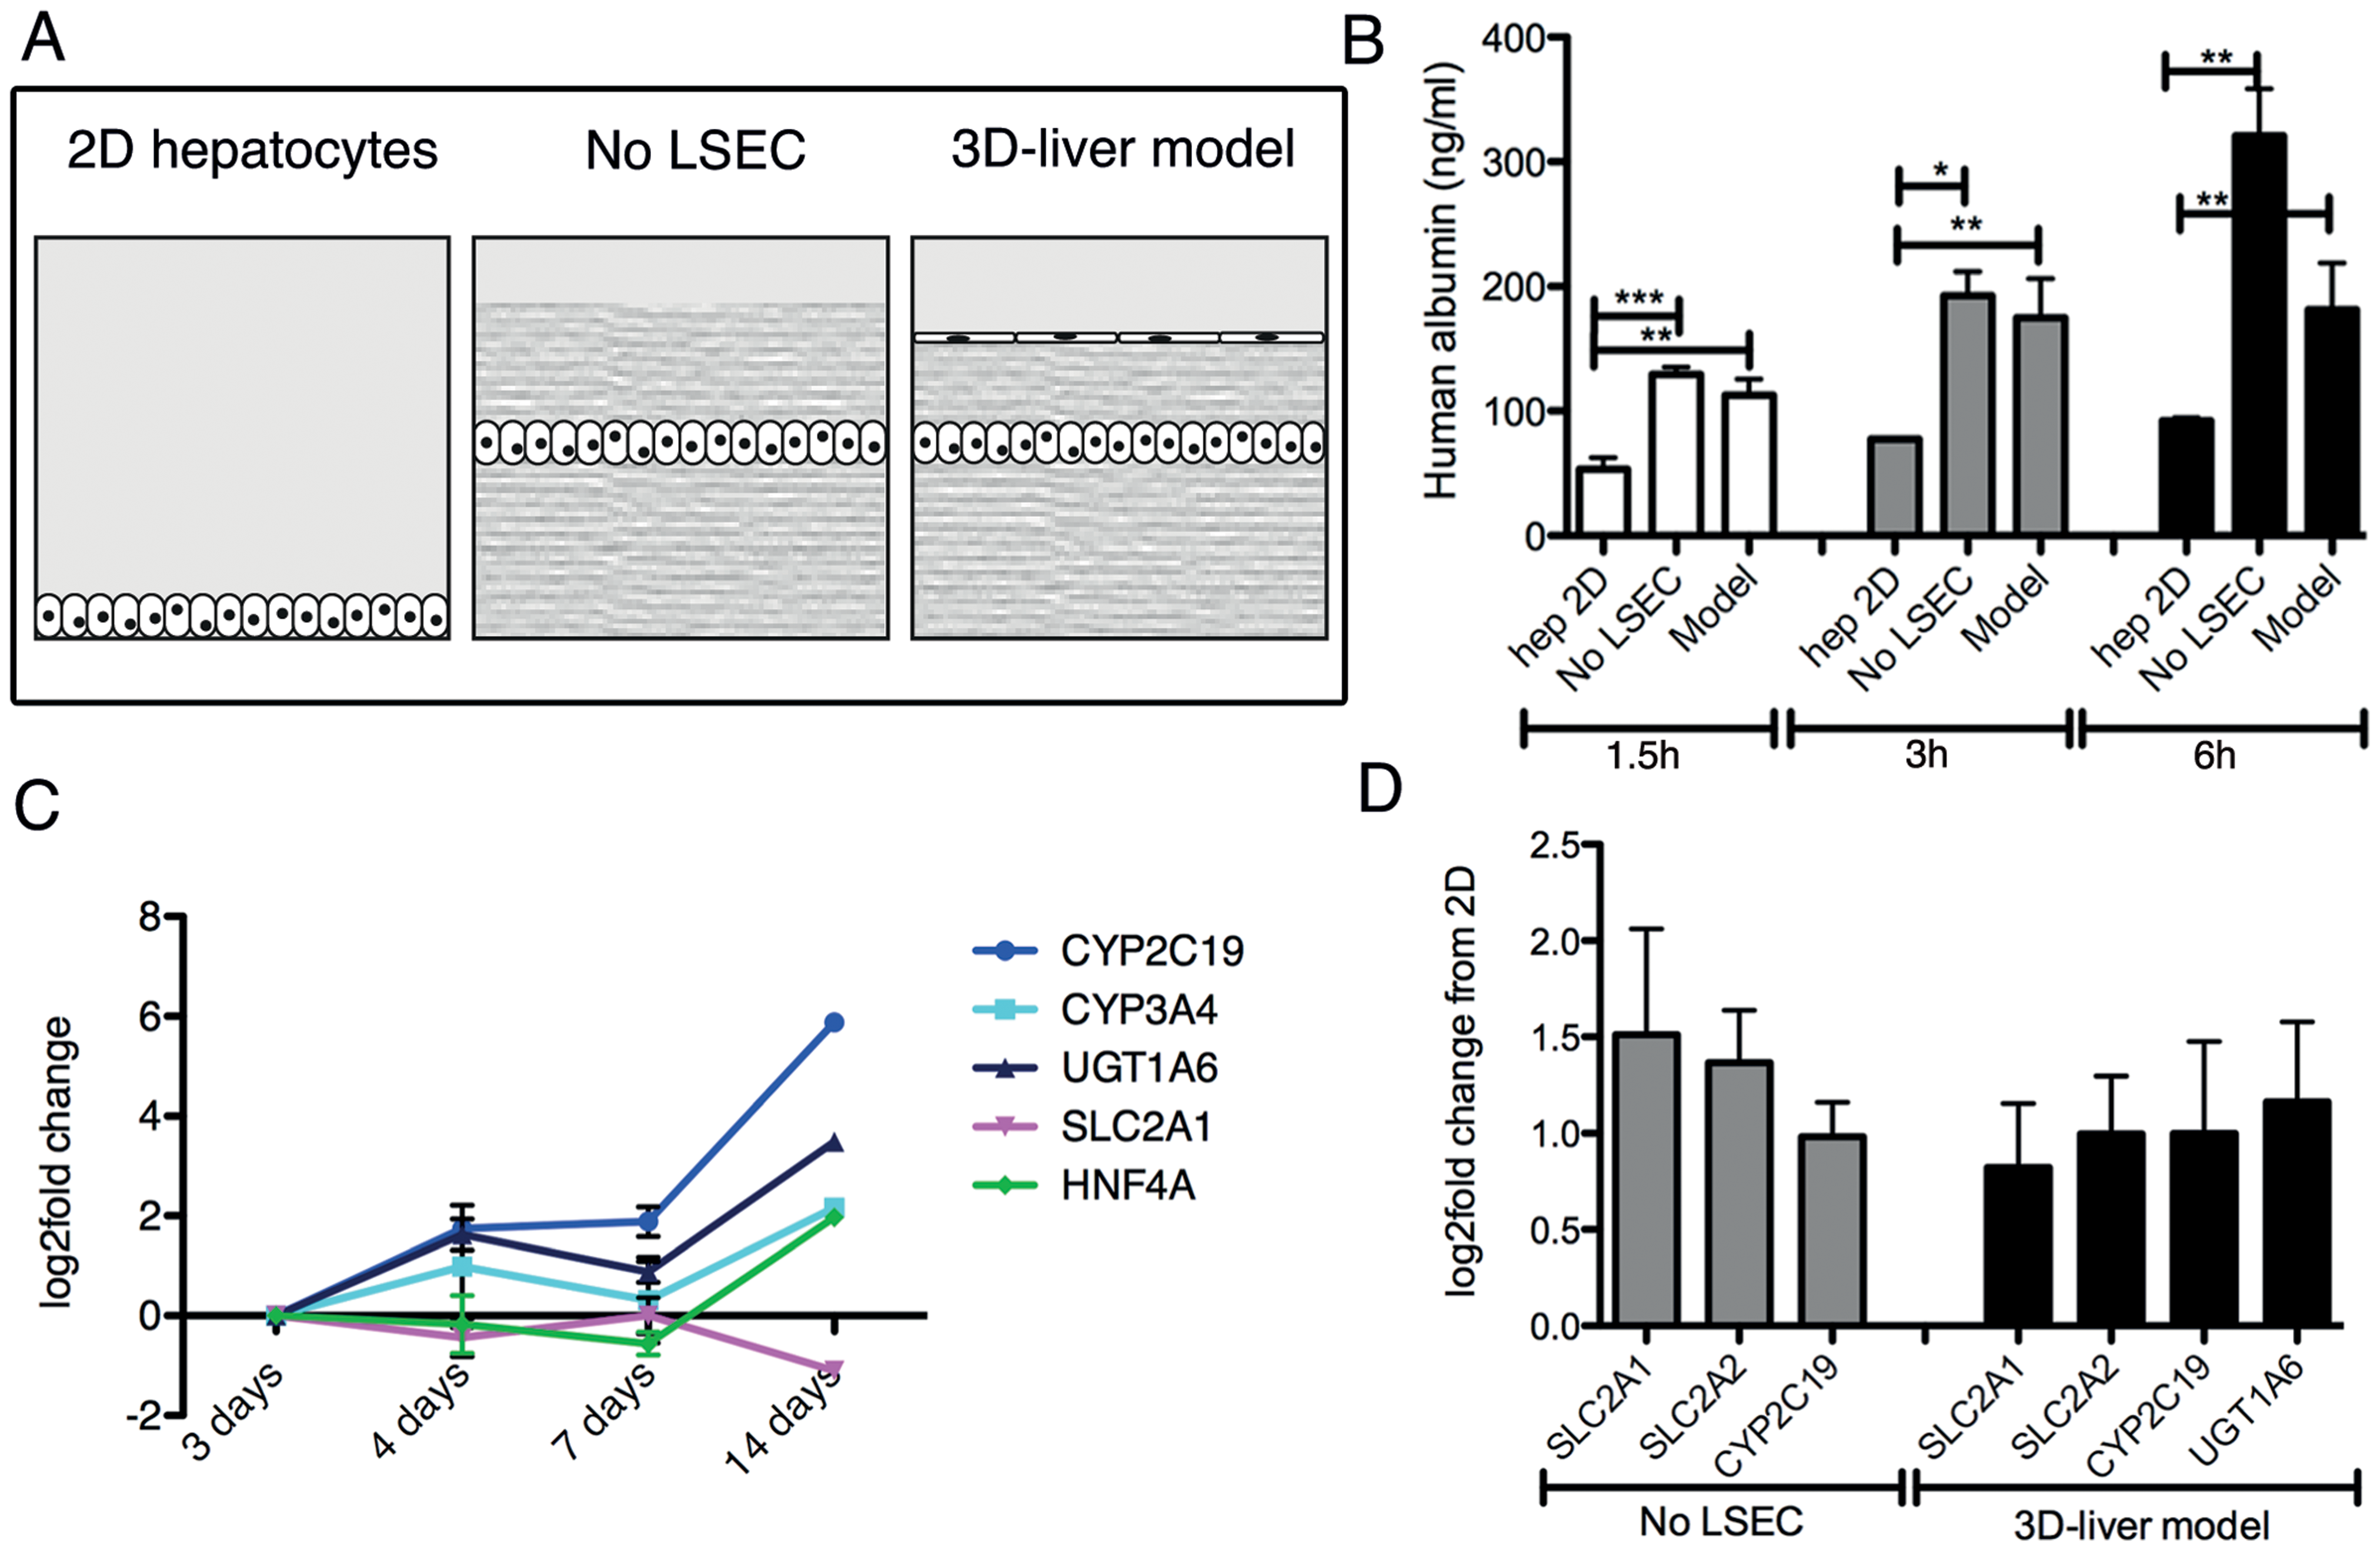 Expression of hepatocyte functions in the human 3D-liver model.